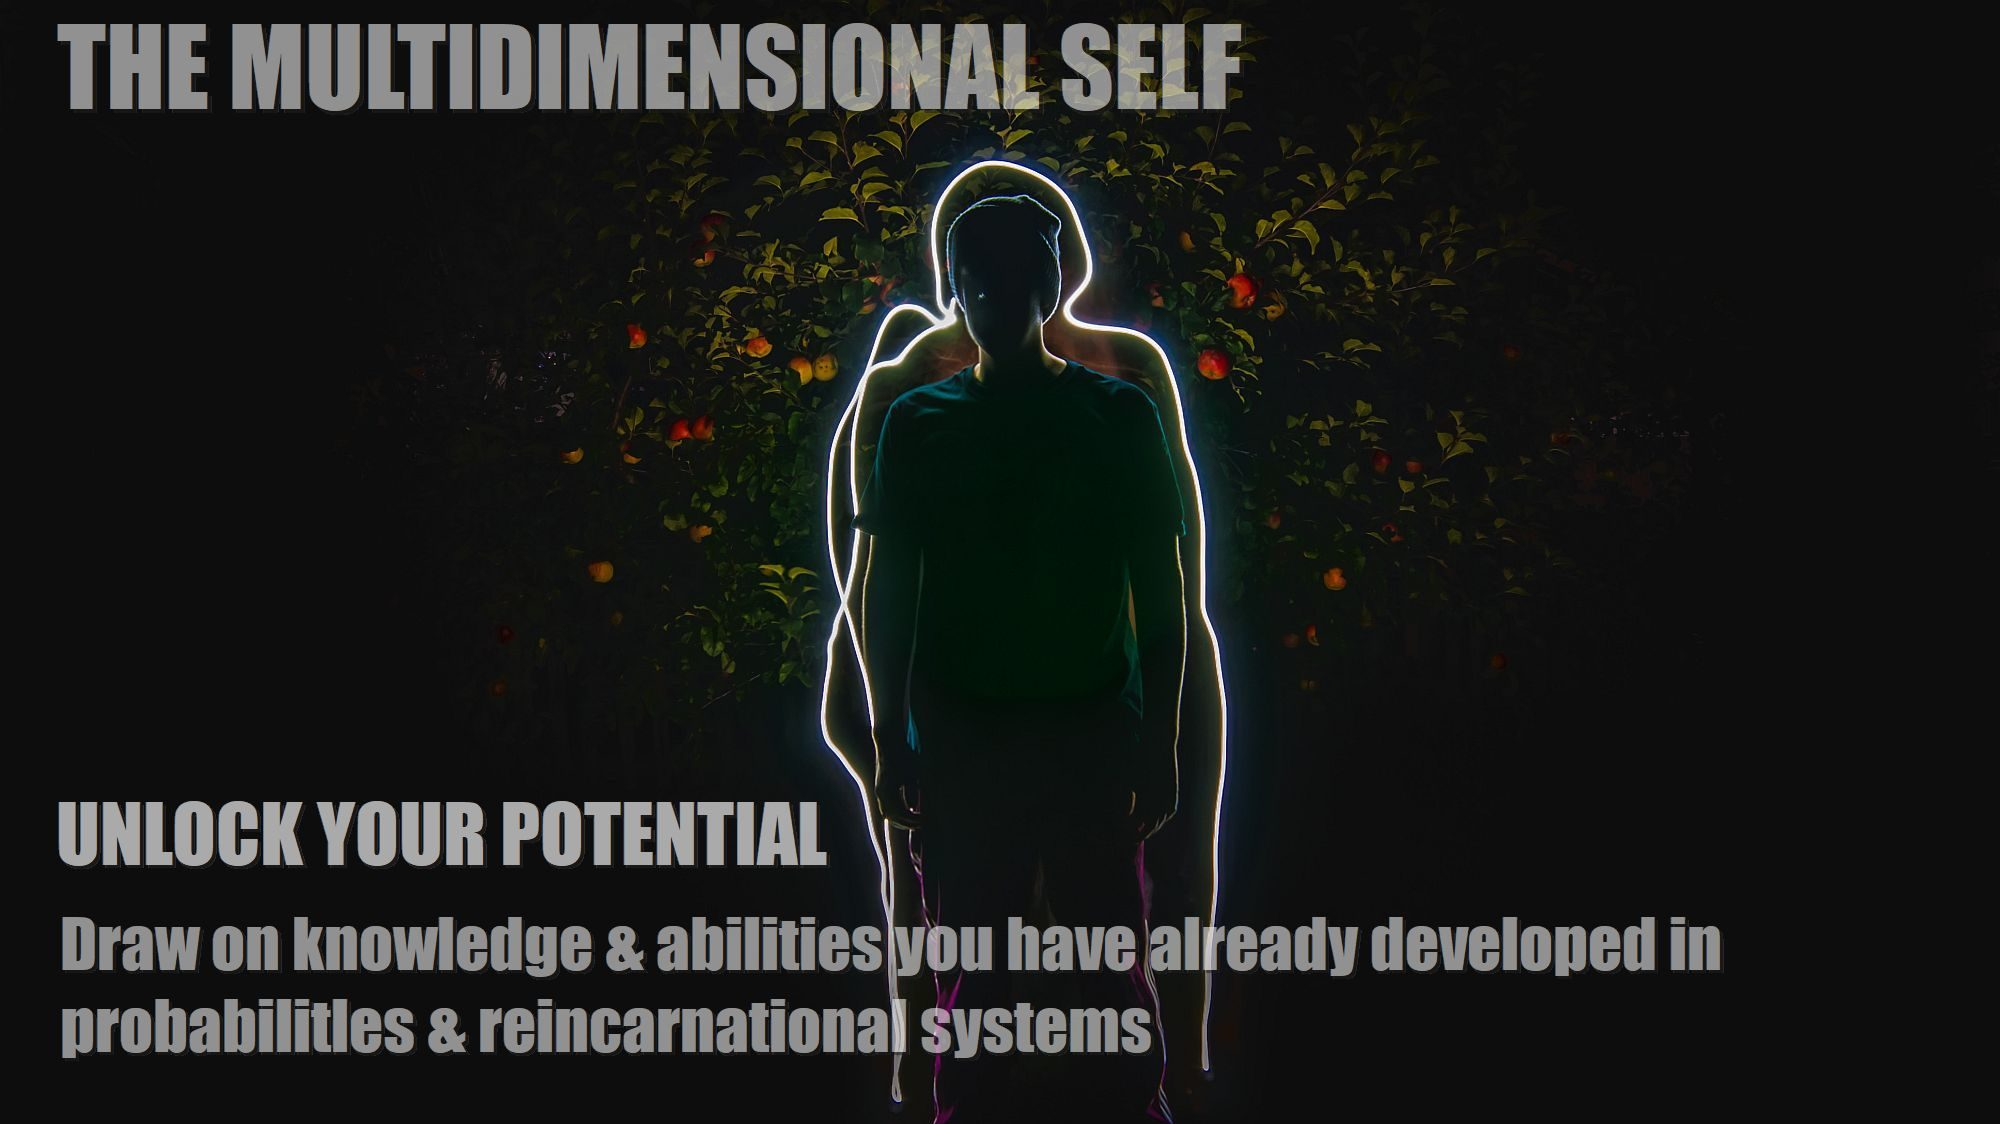 multidimensional-self-how-to-draw-on-the-power-of-the-entity-soul-spirit-inner-mind-j-2000